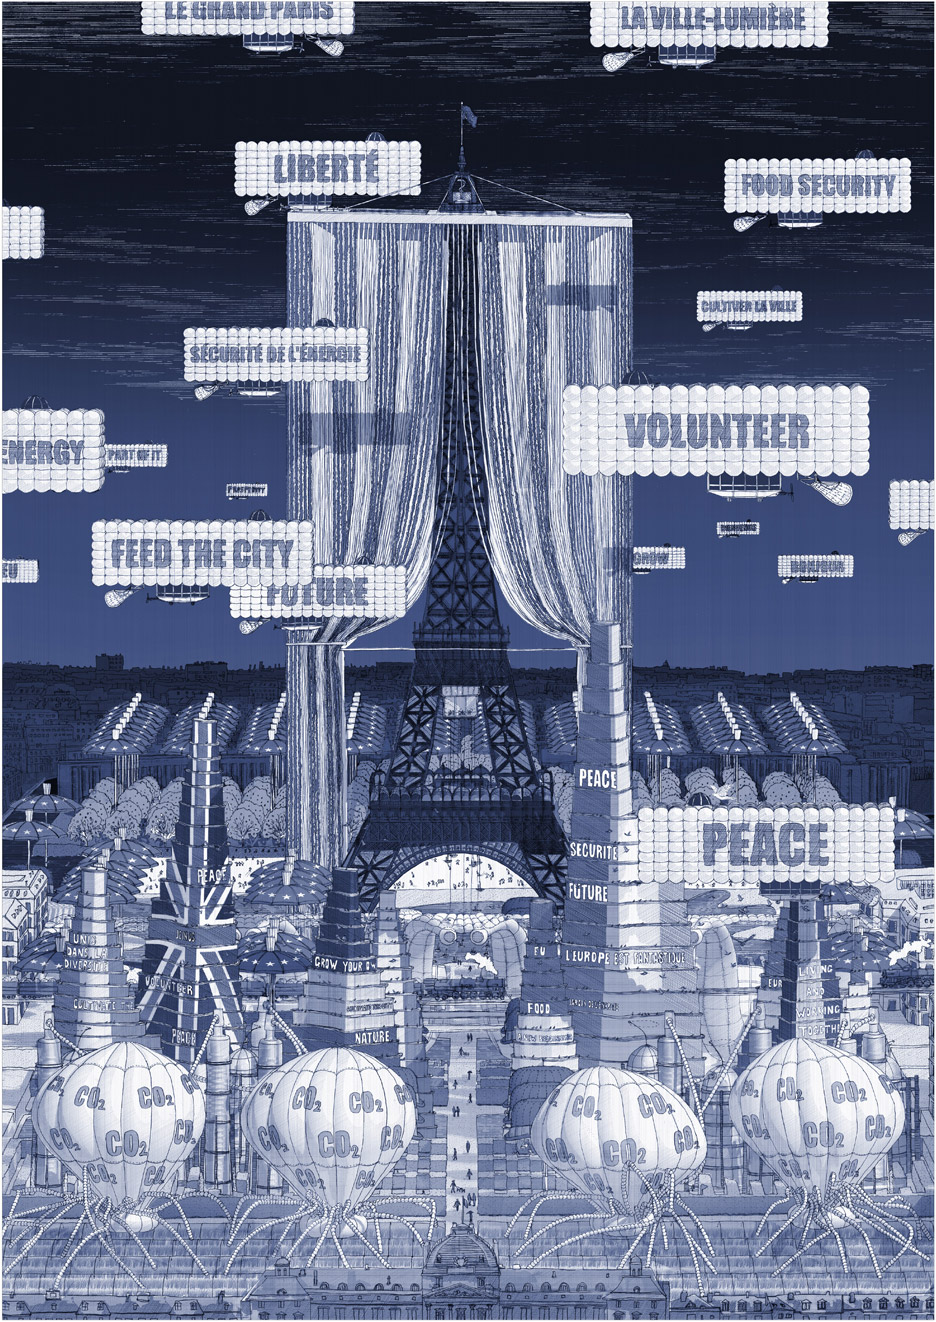 European Union: Referendum to Reimagine by Steve McCloy, a conceptual architecture project from UCL Bartlett